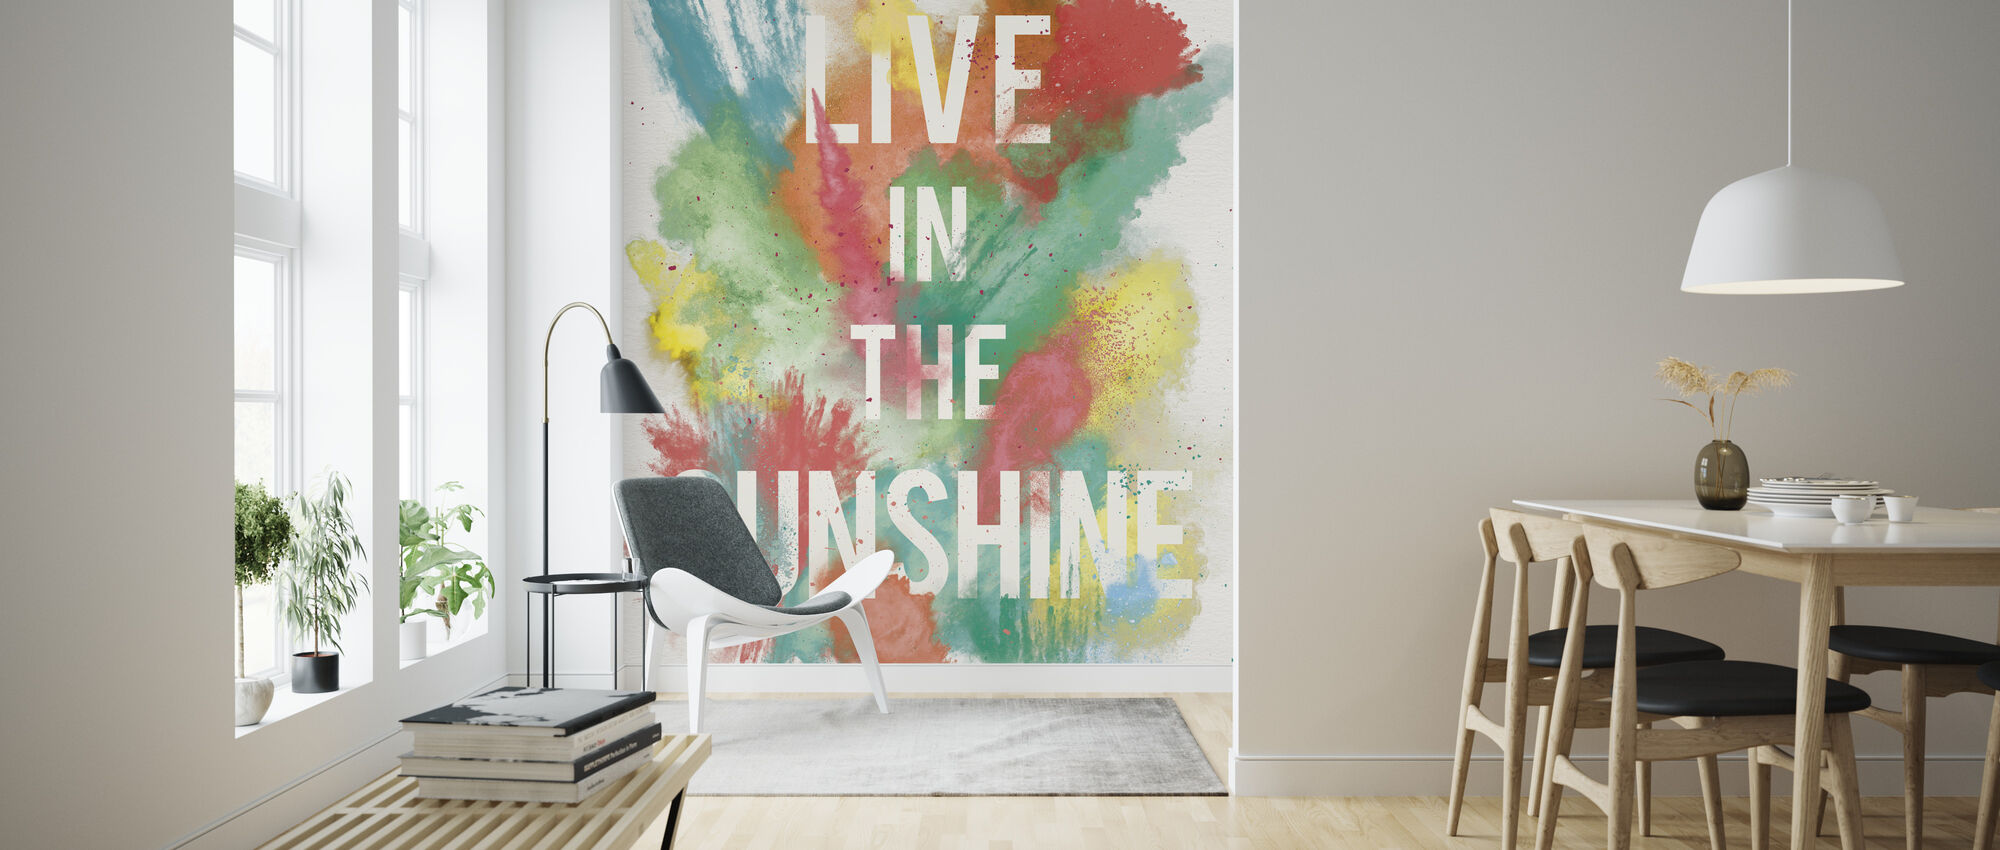 Live in the Sunshine - Wallpaper - Living Room